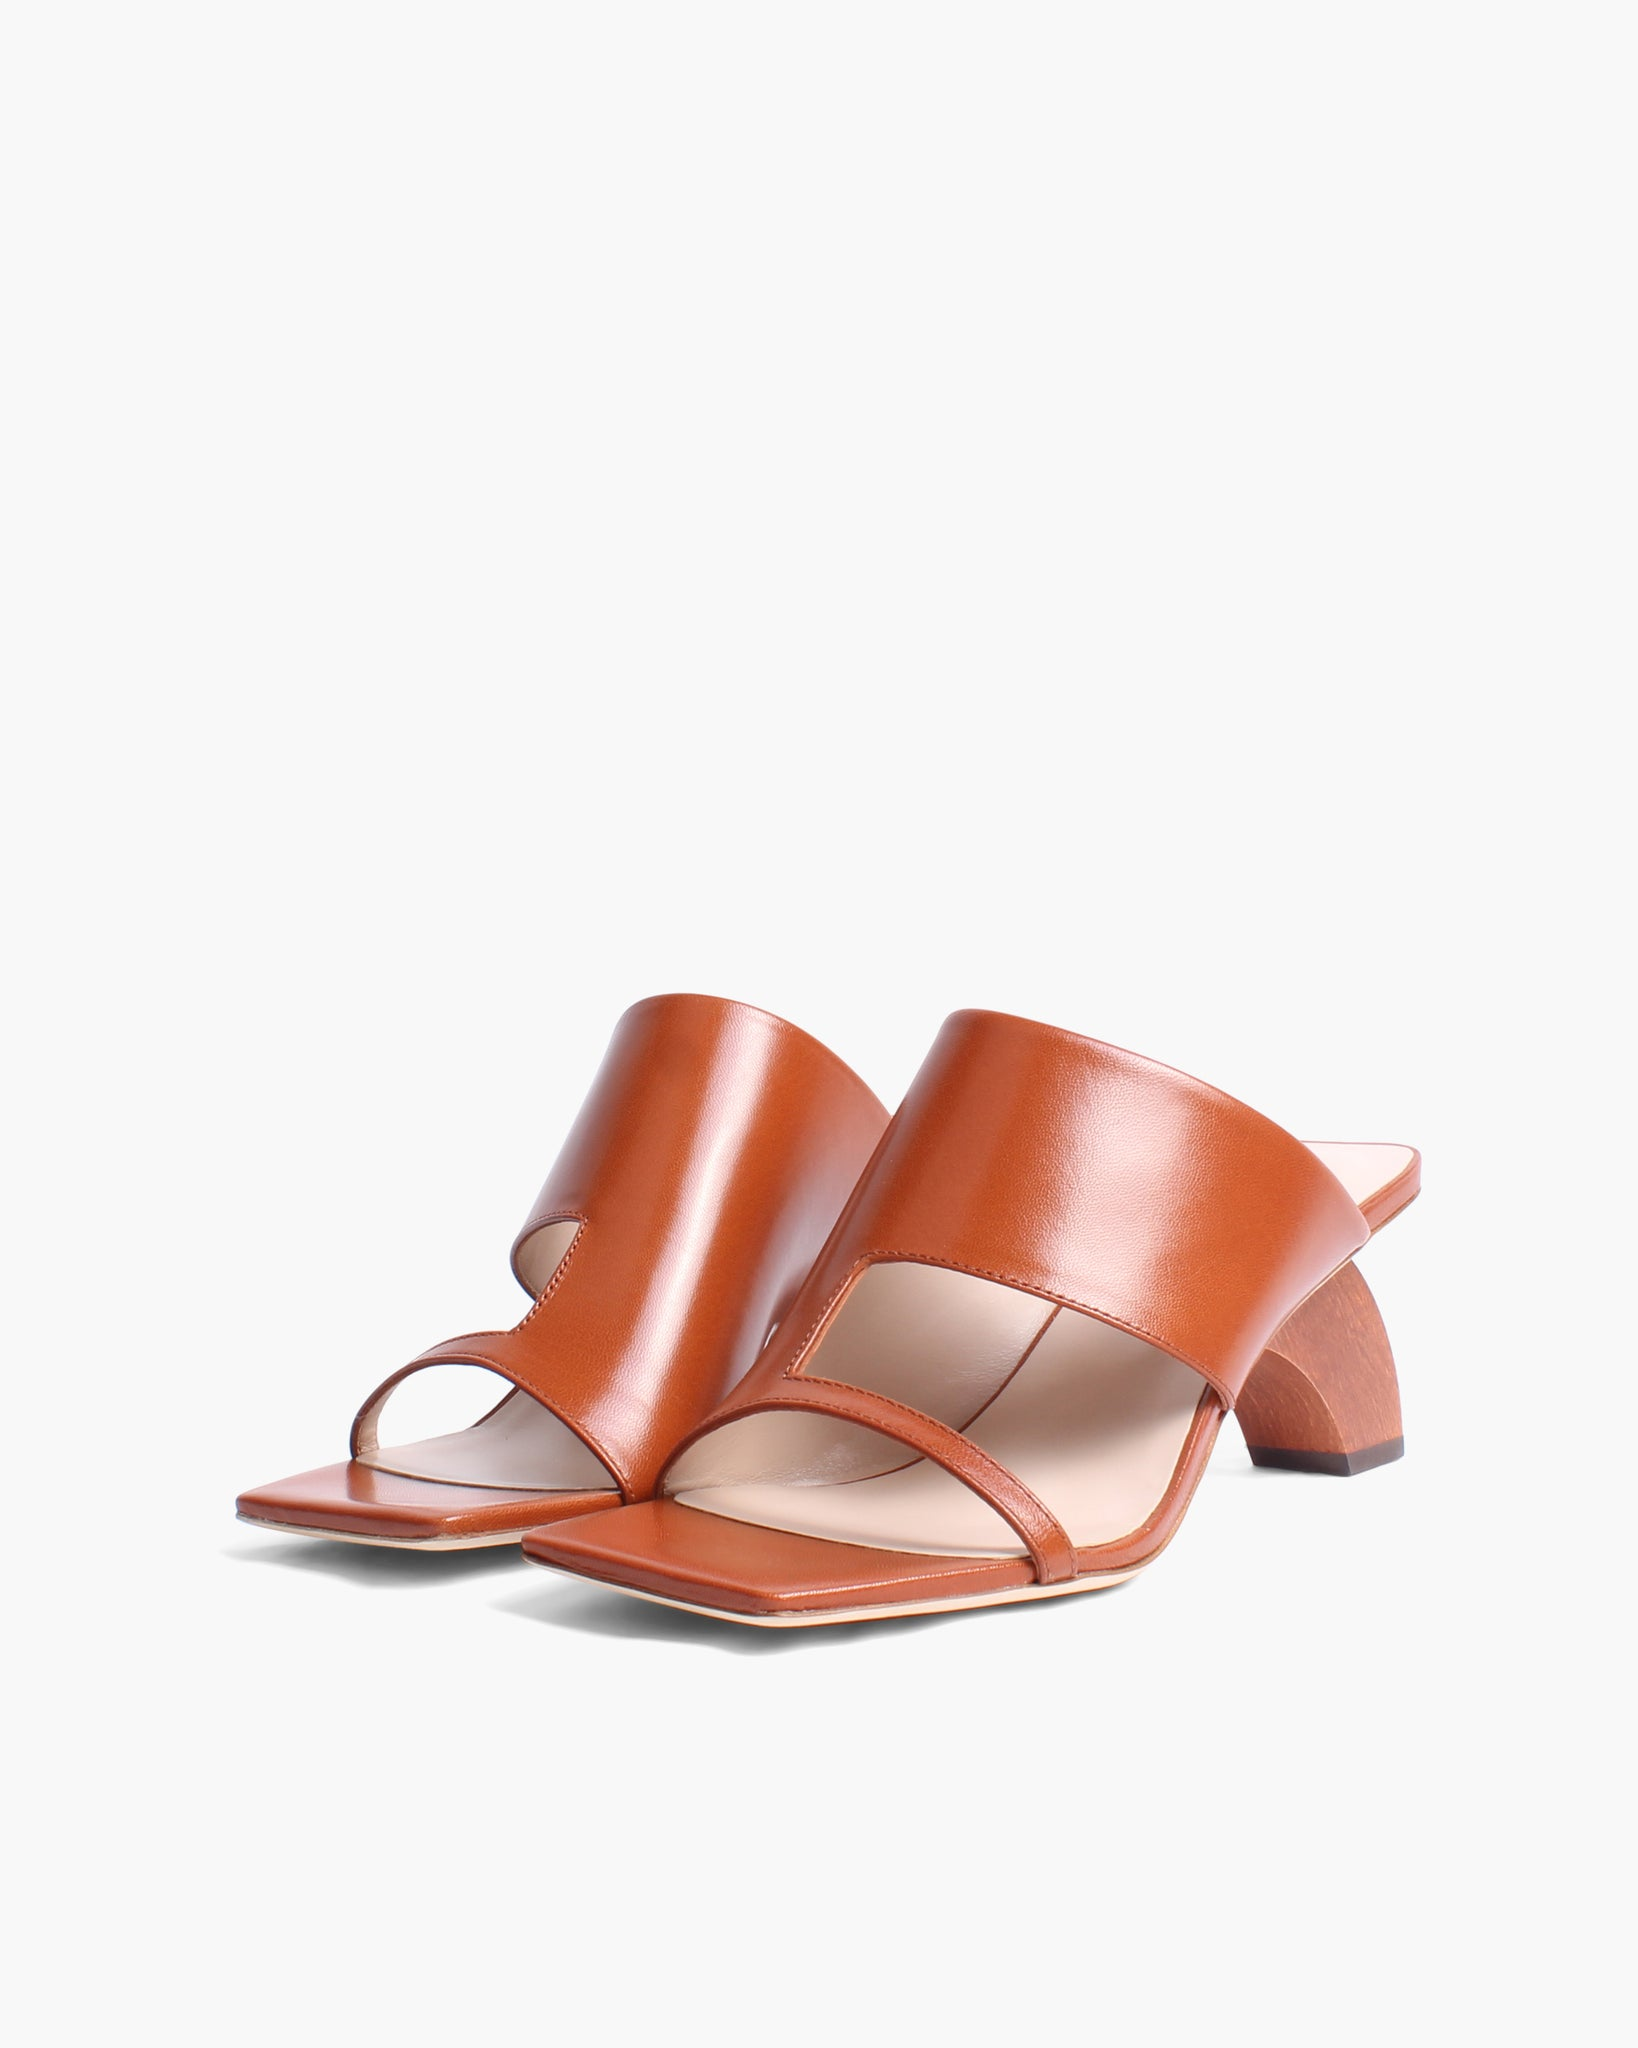 Leah Sandals Leather Brown - SPECIAL PRICE